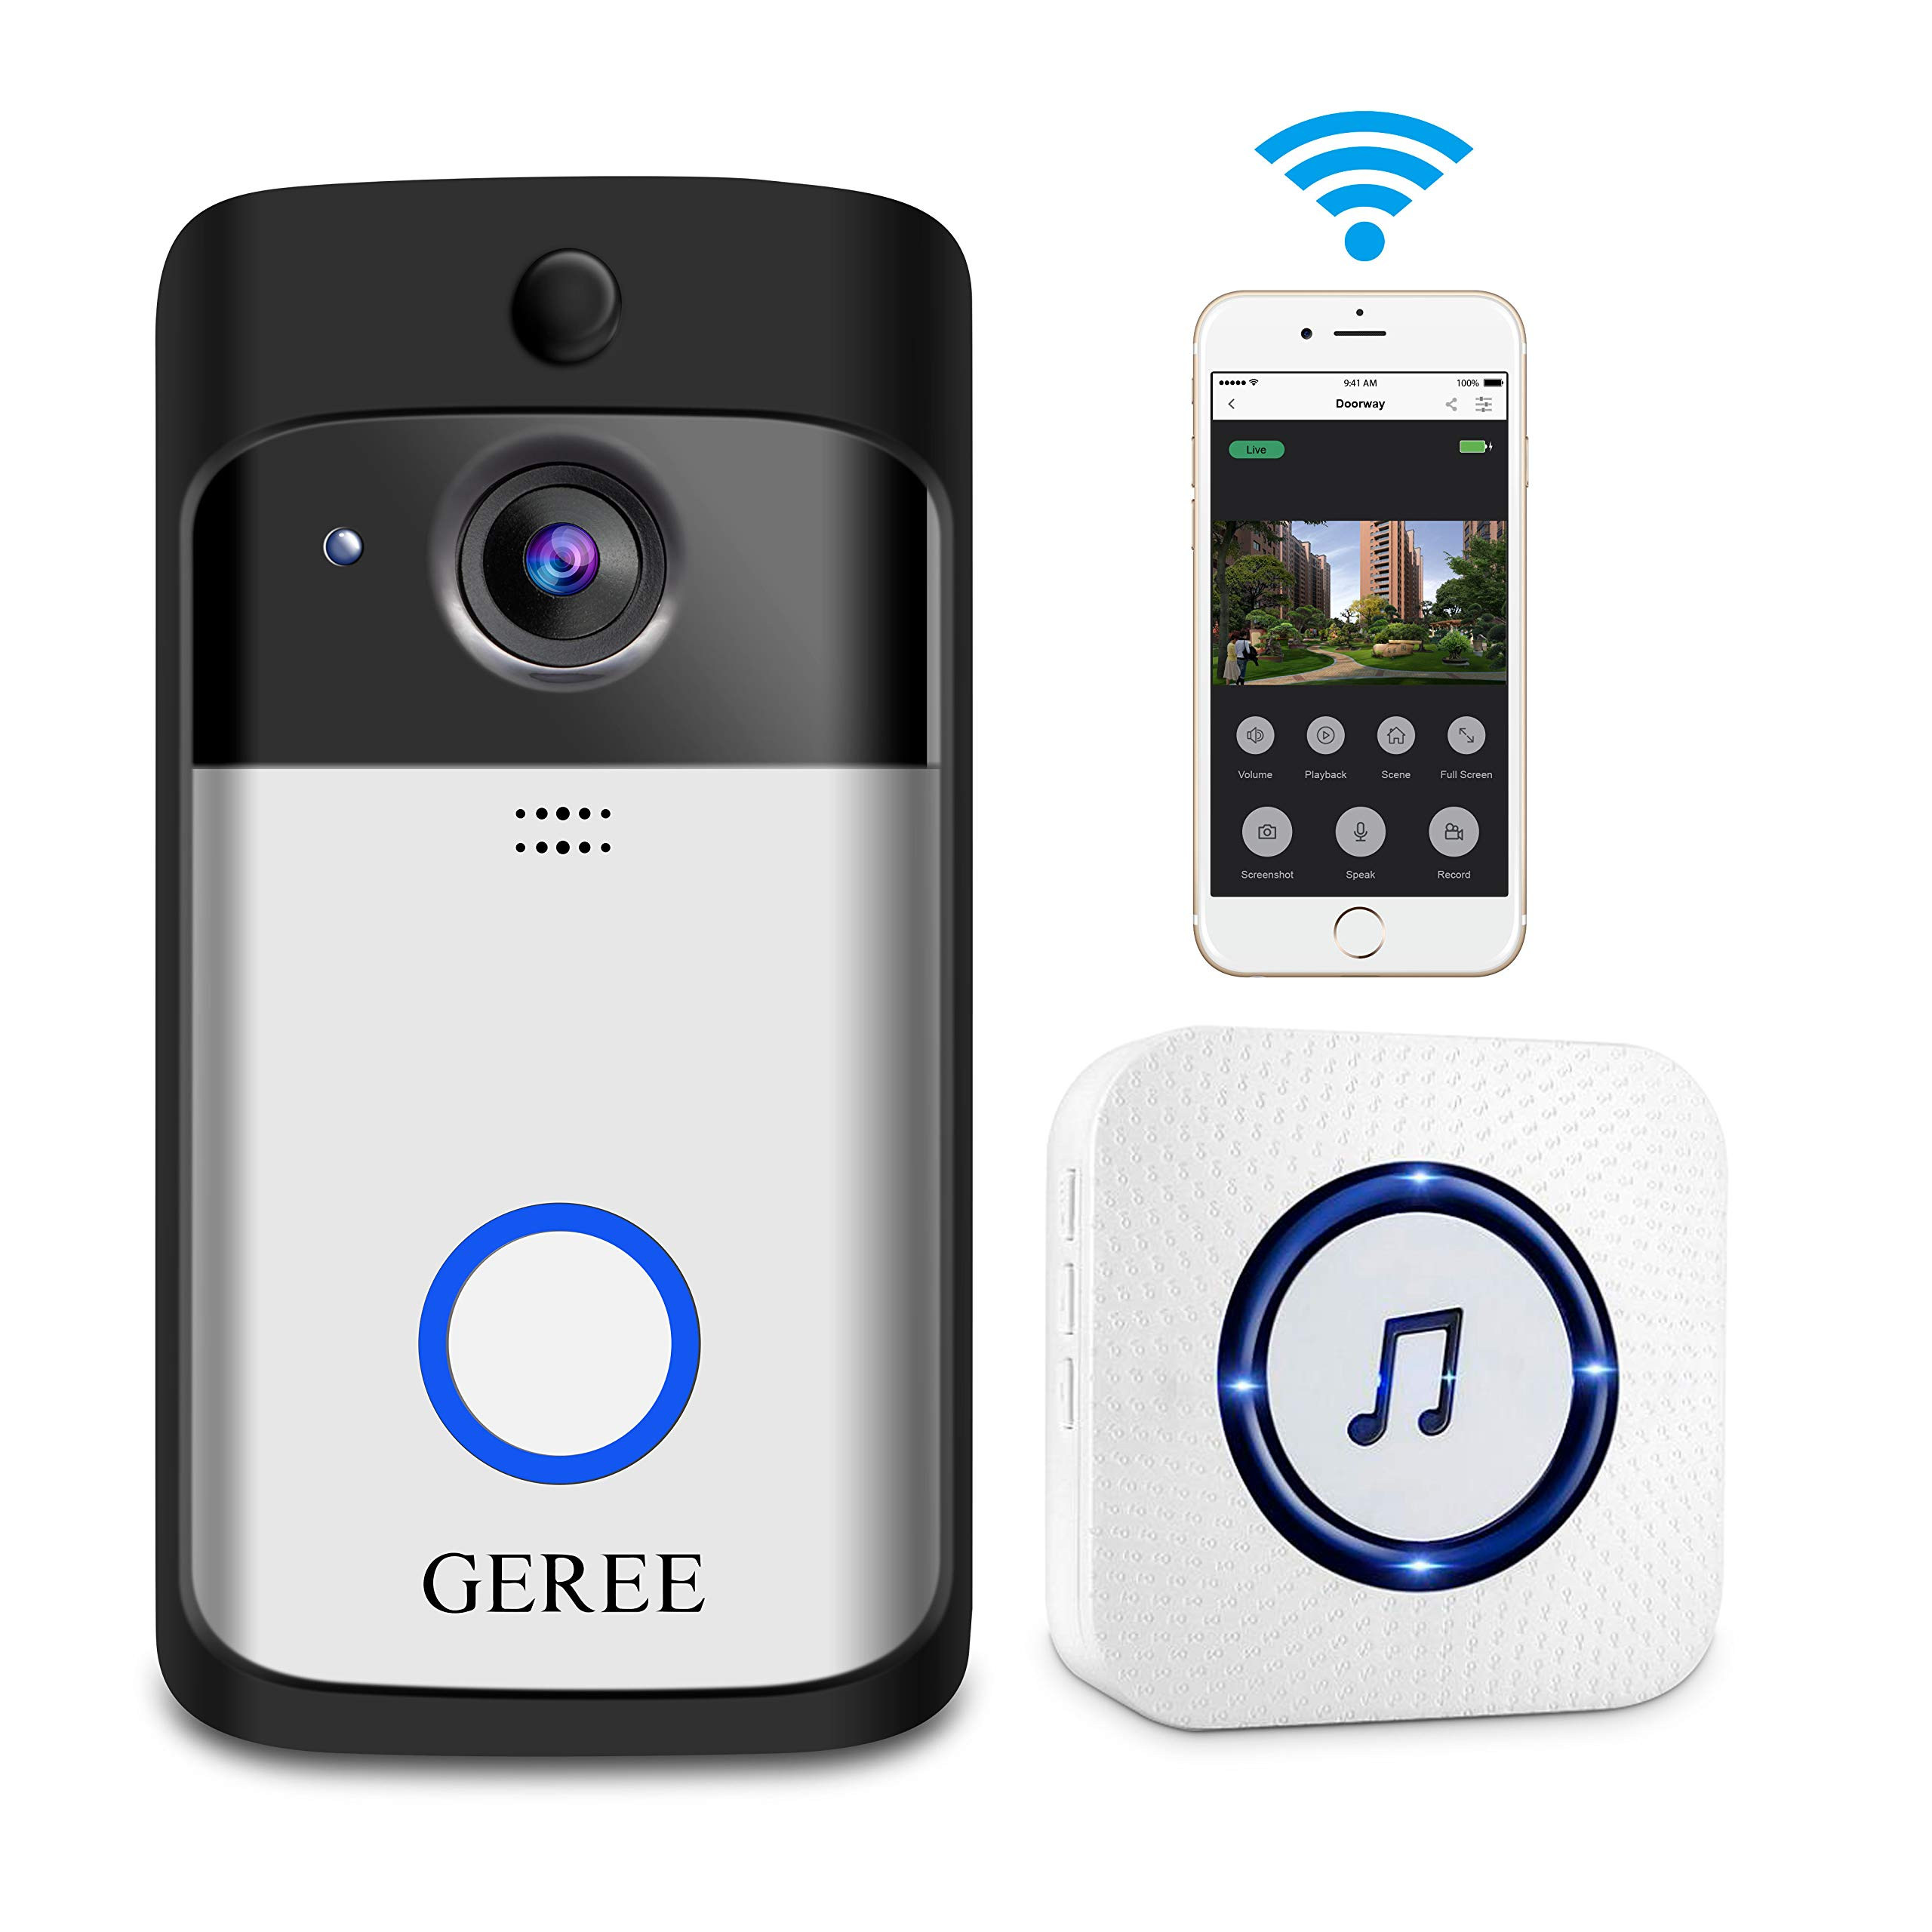 Video Doorbell, GEREE WiFi Smart Wireless Doorbell 720P HD Security Home Camera Real-Time Video and Two-Way Talk, Night Vision, PIR Motion Detection App Control for iOS and Android